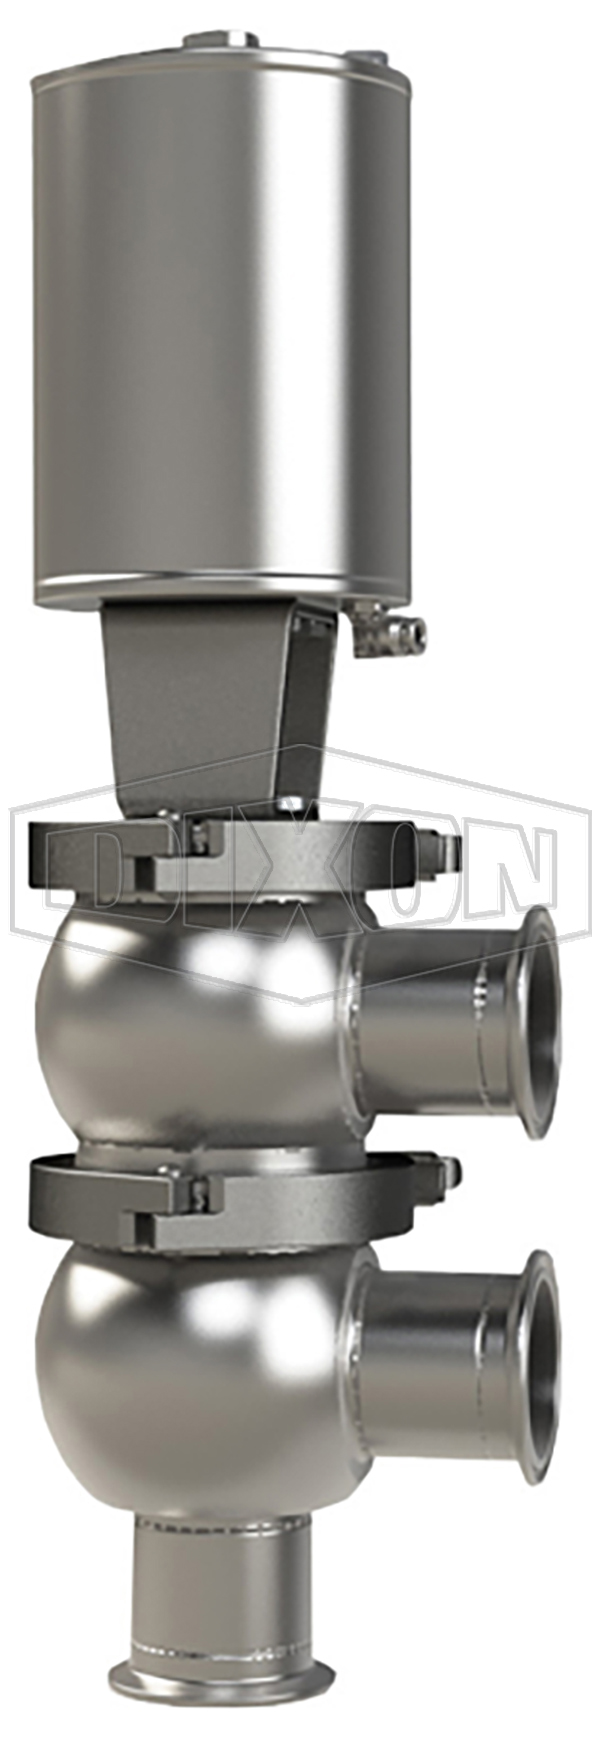 SSV Series Single Seat Valve, Divert F Body, Clamp, Spring Return Actuator (Air-To-Lower)